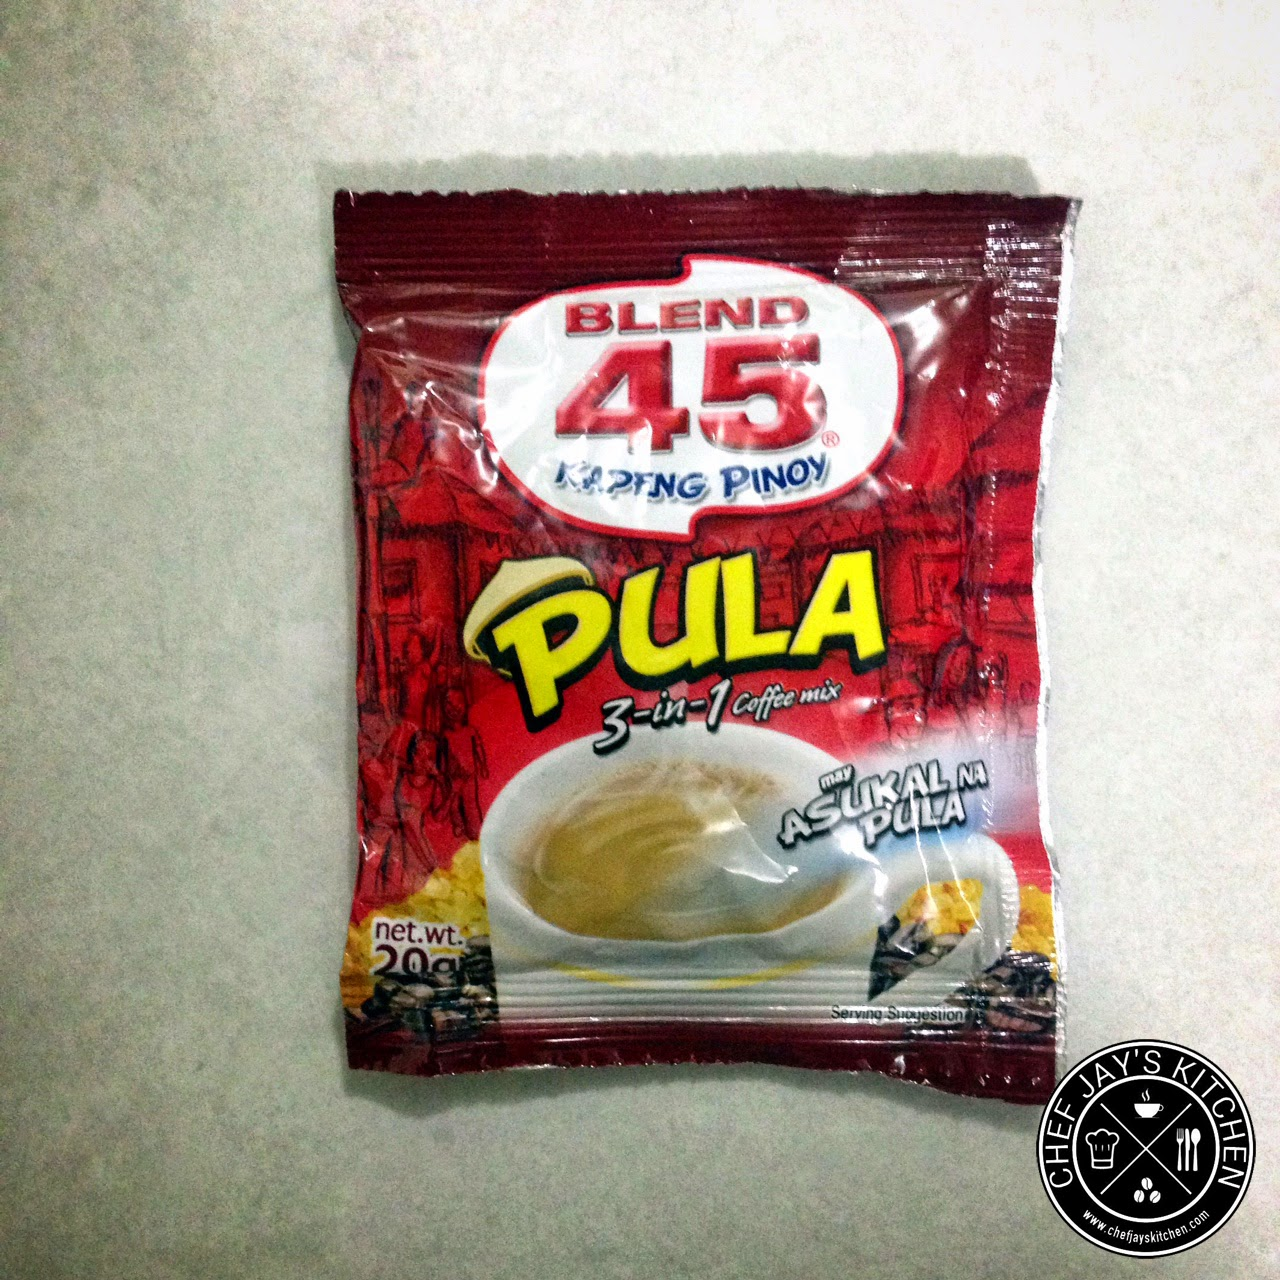 Brown Coffee Brands in the Philippines Review - Blend 45 Pula